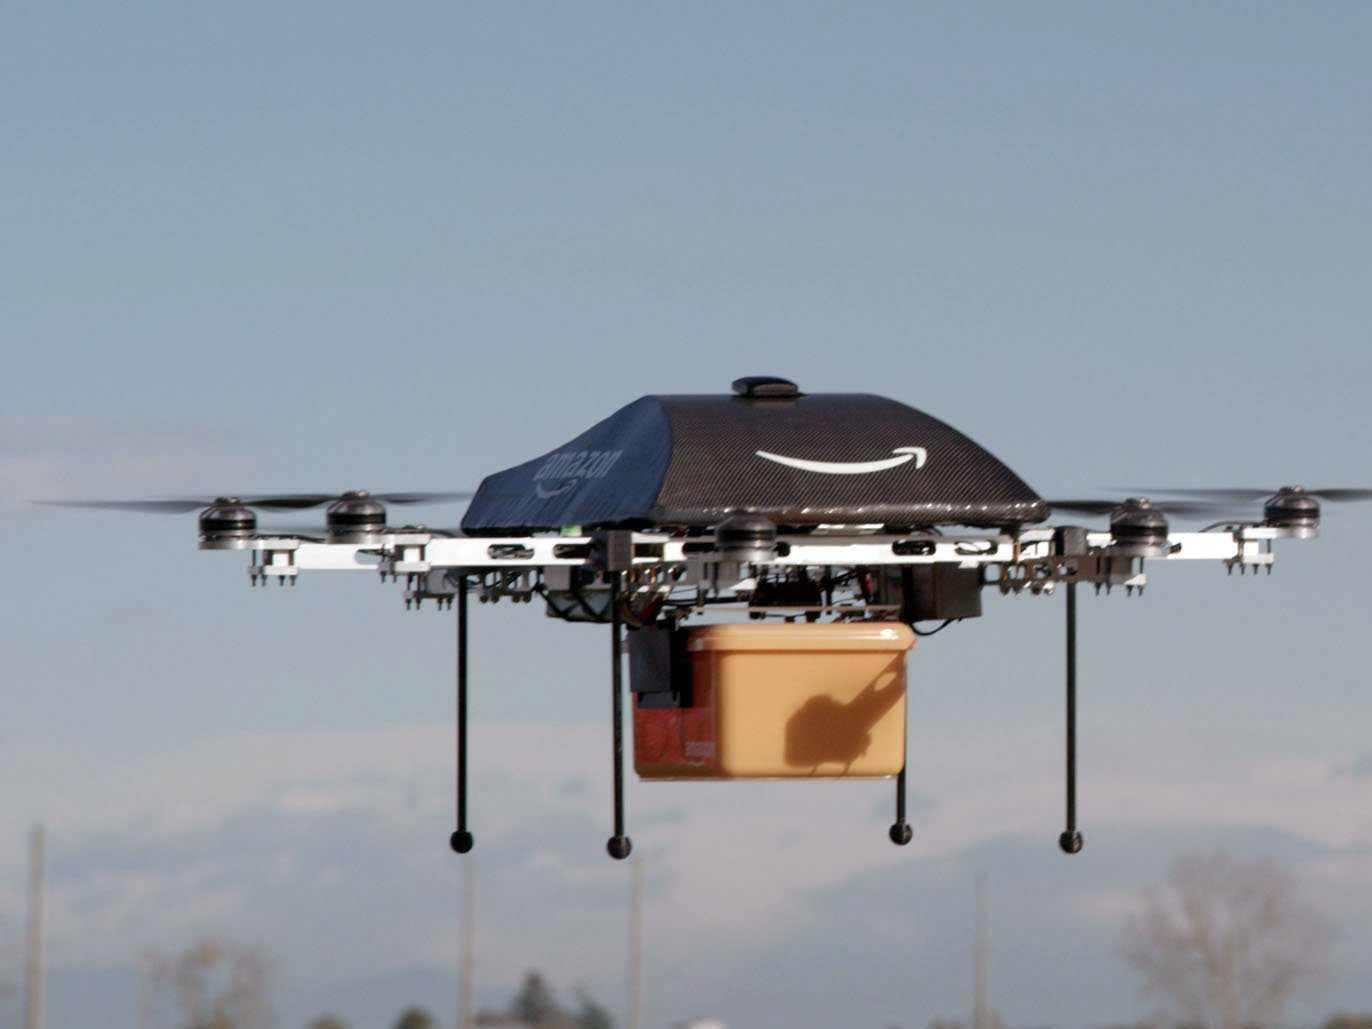 We're one step closer to having drones deliver our goods thanks to an unexpected partnership between two tech giants